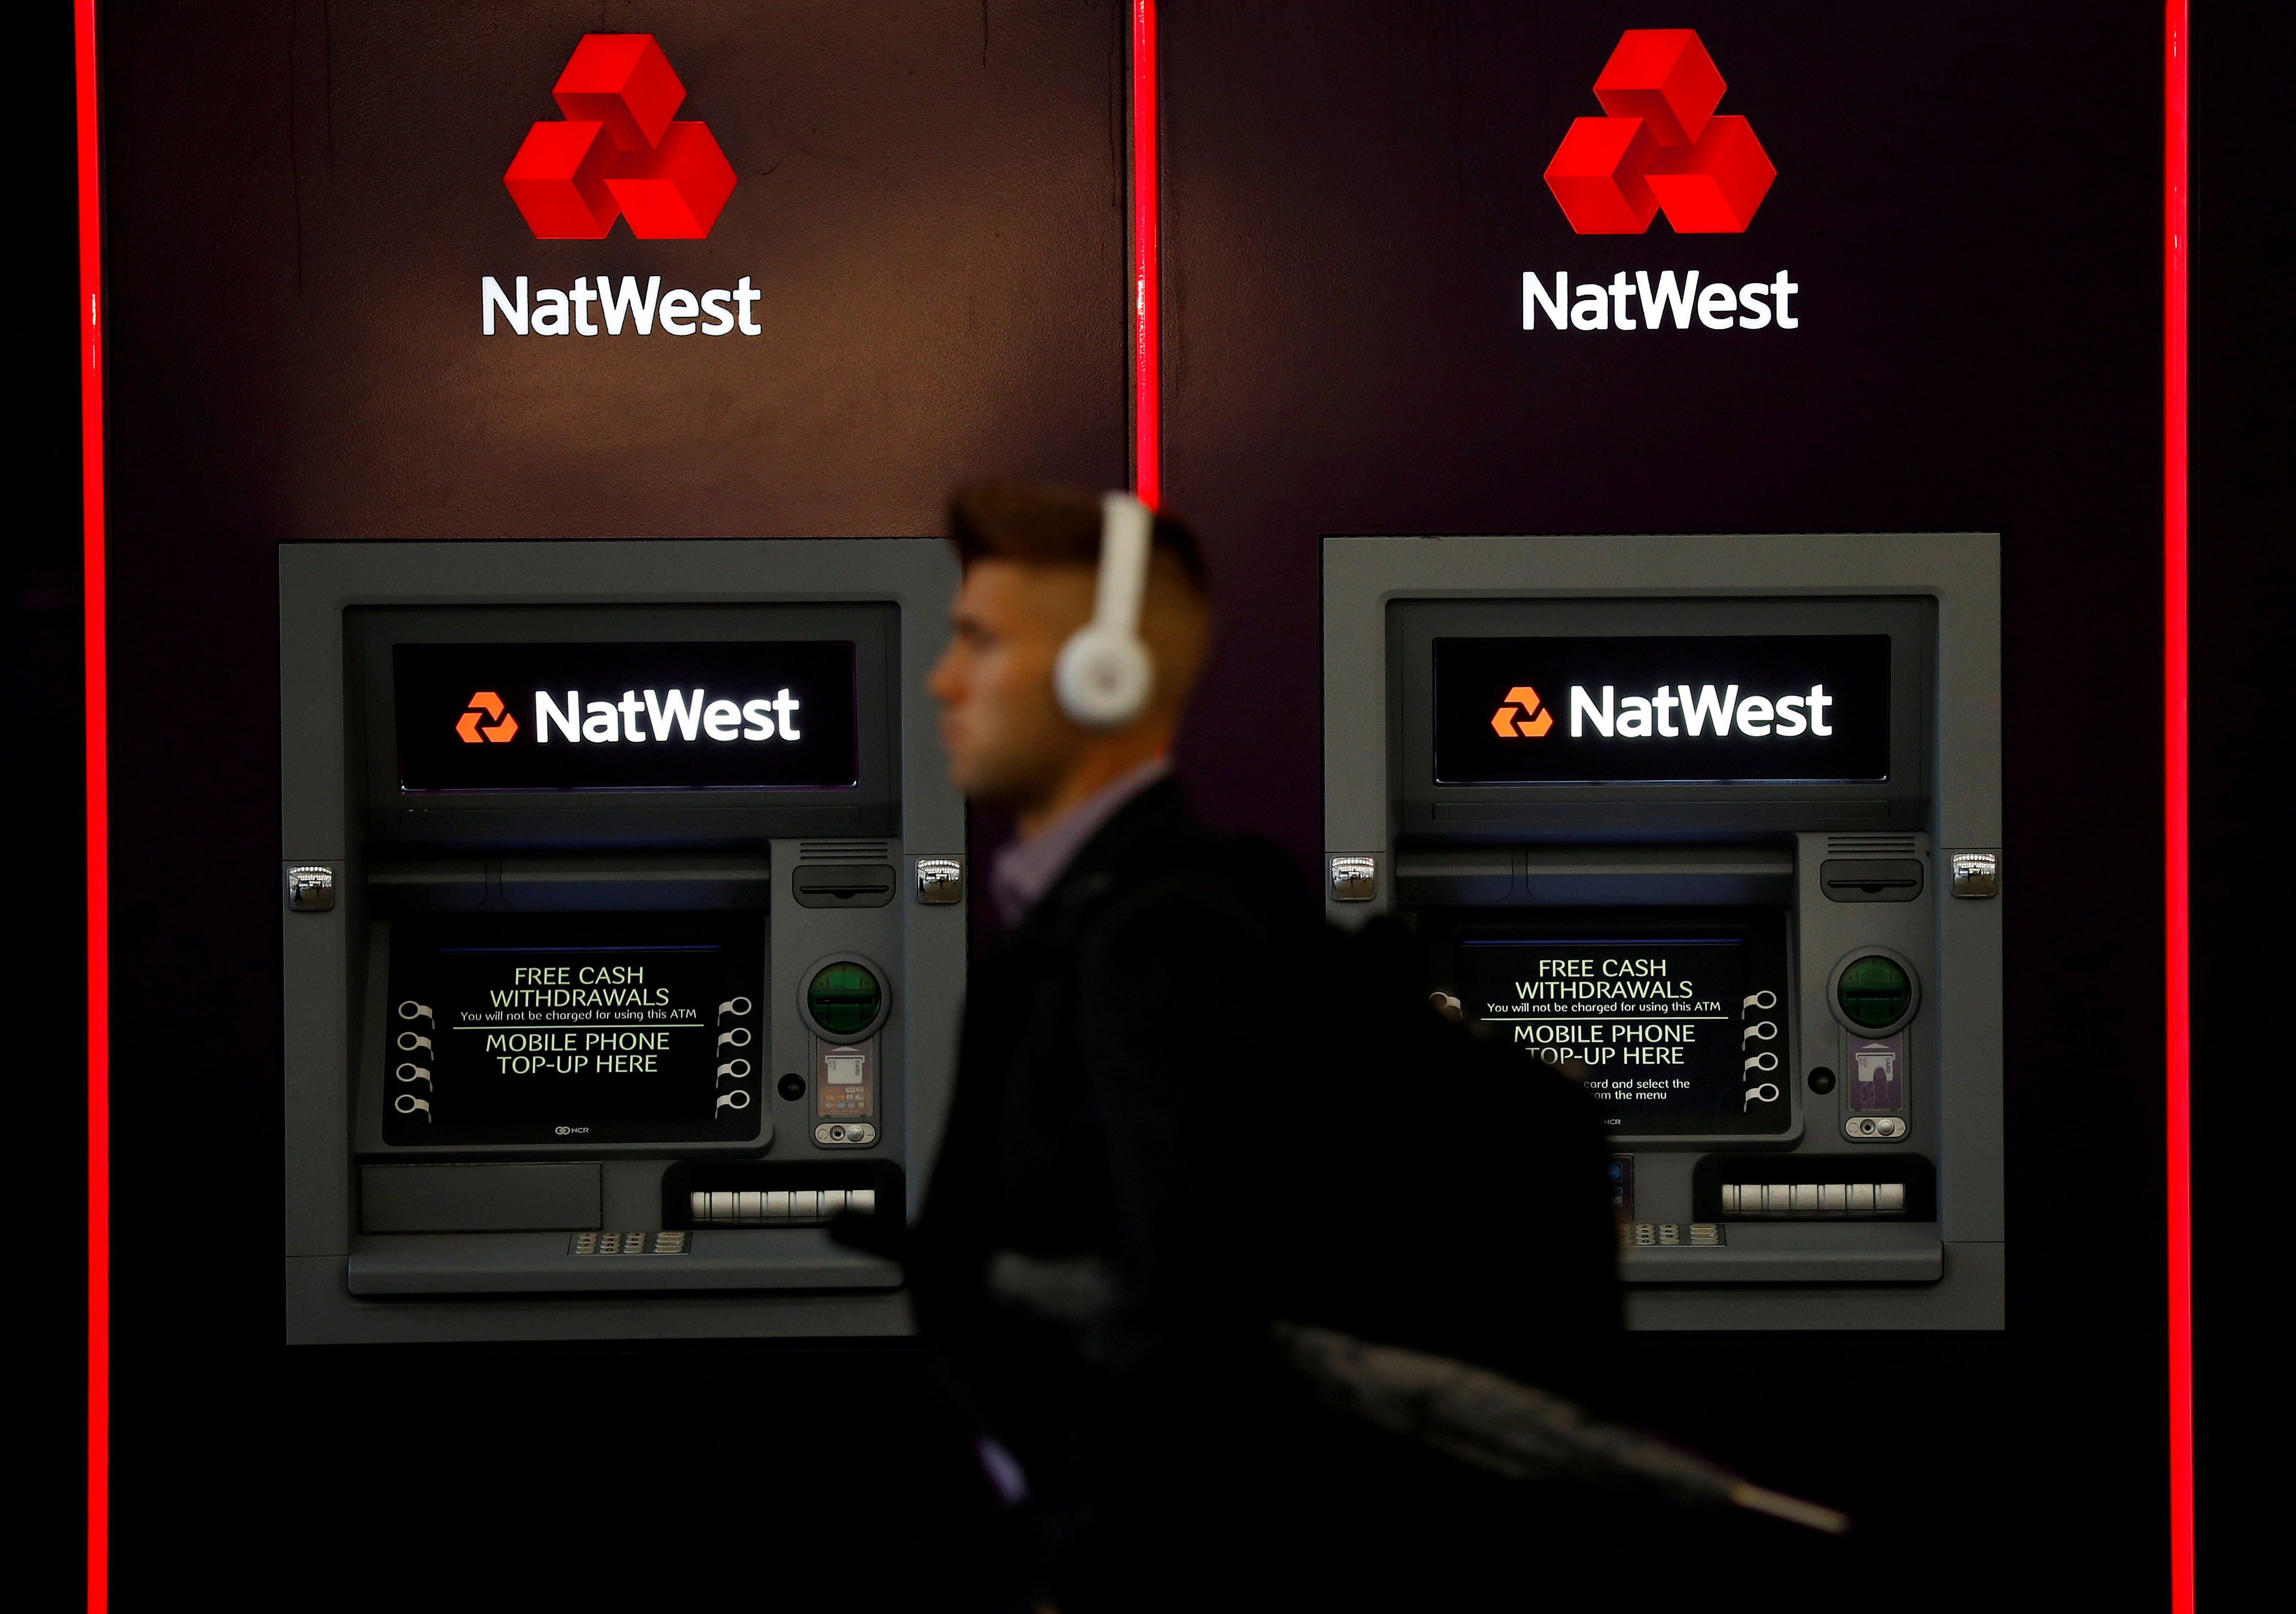 A man walks past ATM machines at branch of the NatWest bank in Manchester, Britain September 21, 2017. REUTERS/Phil Noble